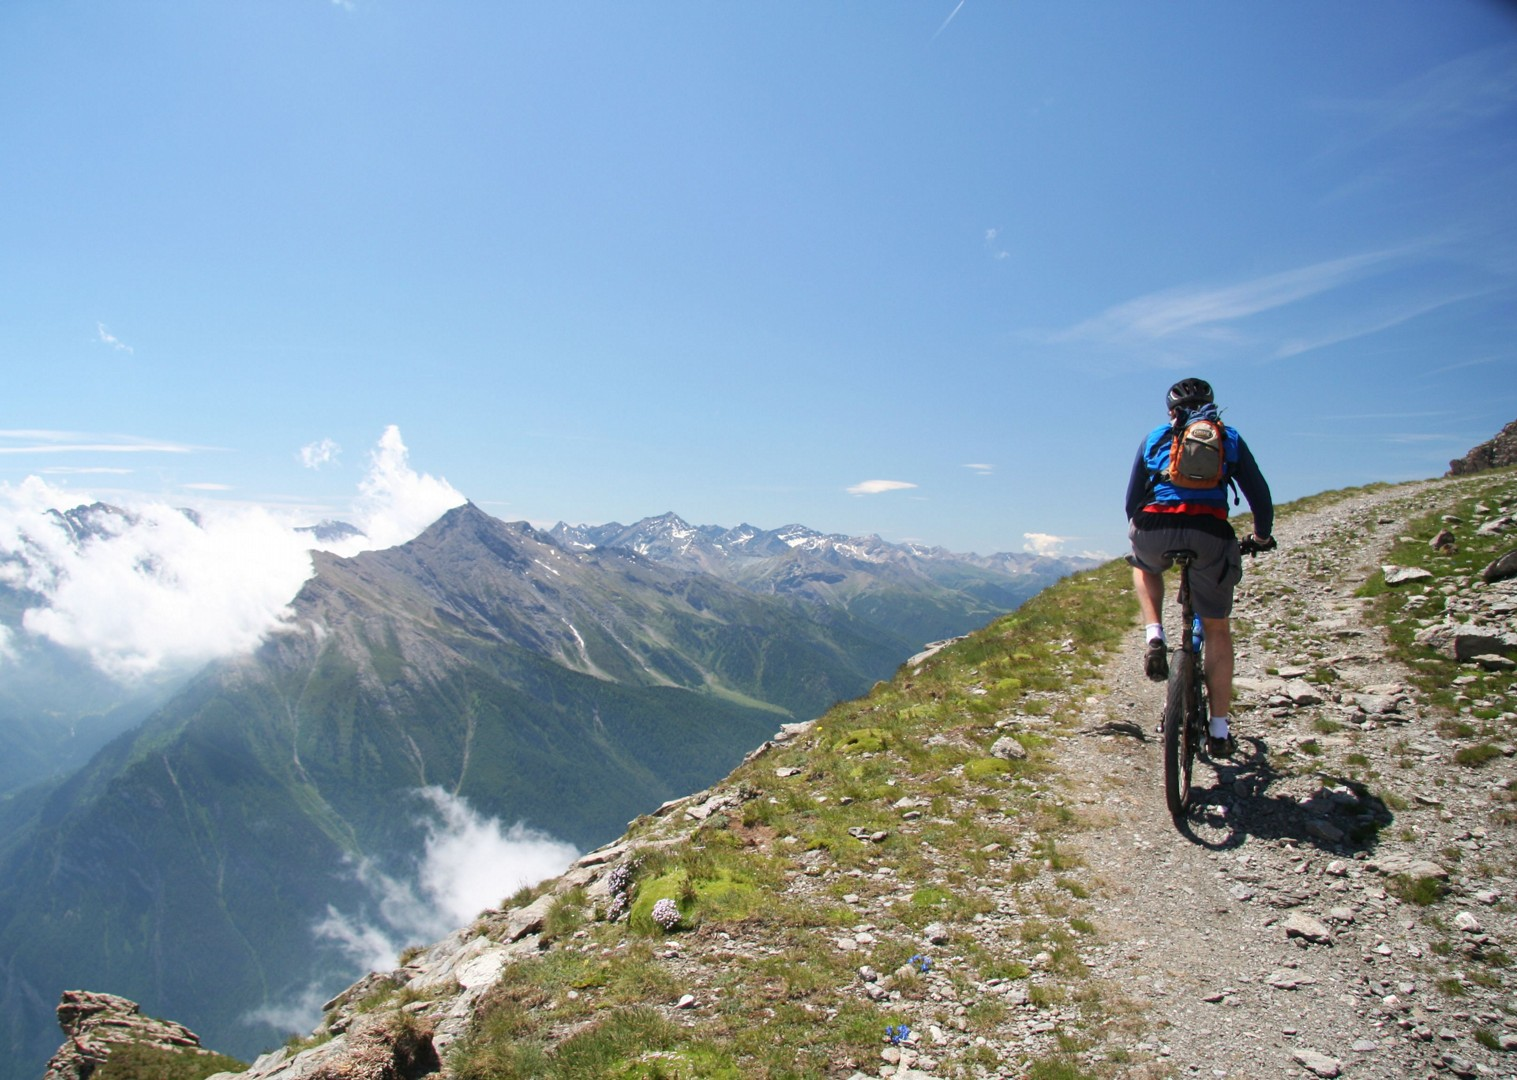 mountain-bike-holiday-in-italy-and-france-alpine-adventure.JPG - Italy and France - Alpine Adventure - Guided Mountain Bike Holiday - Italia Mountain Biking